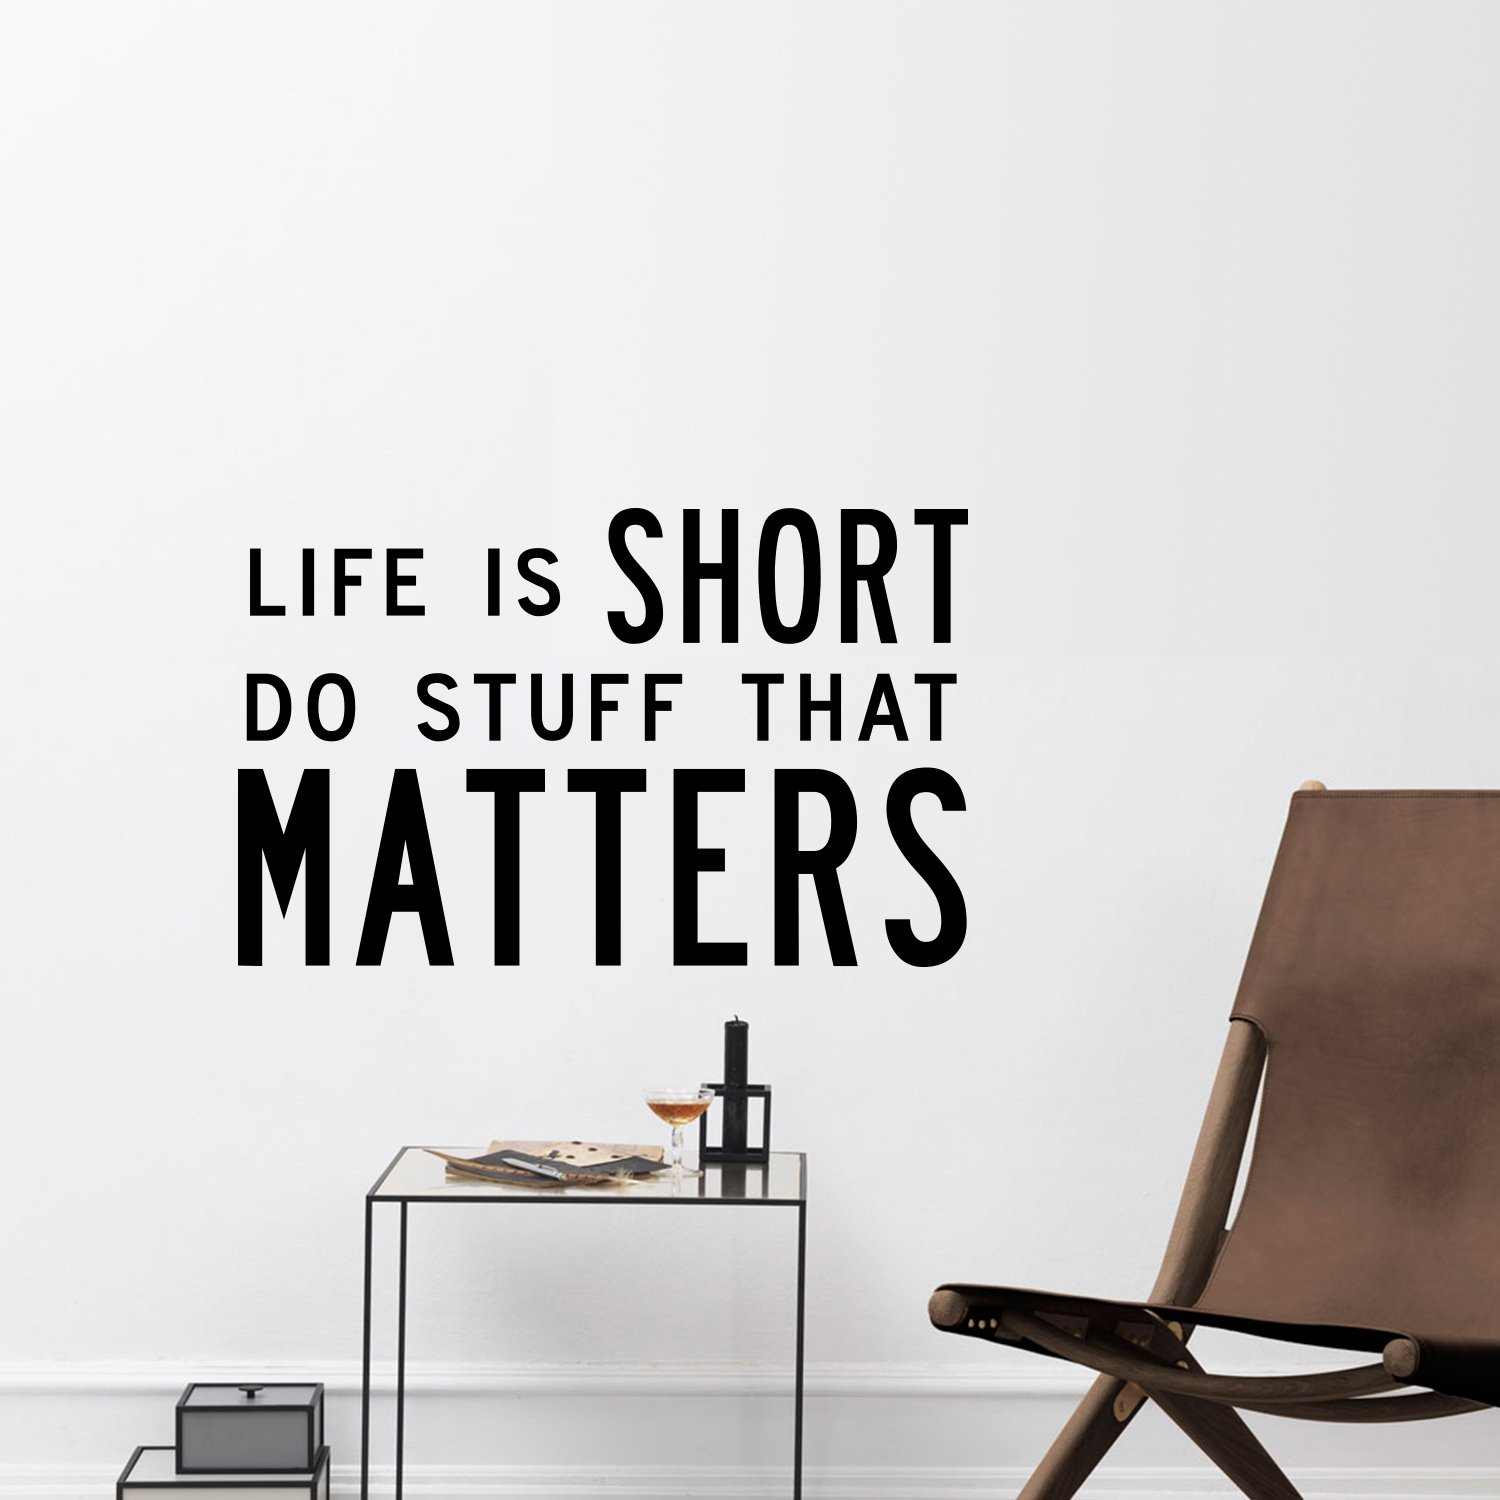 Inspirational Quote Vinyl Wall Art Decal - Life is Short Do Stuff That Matters - 15'' x 24'' - Living Room Bedroom Work Office Motivational Sayings - Removable Sticker Decals Signs